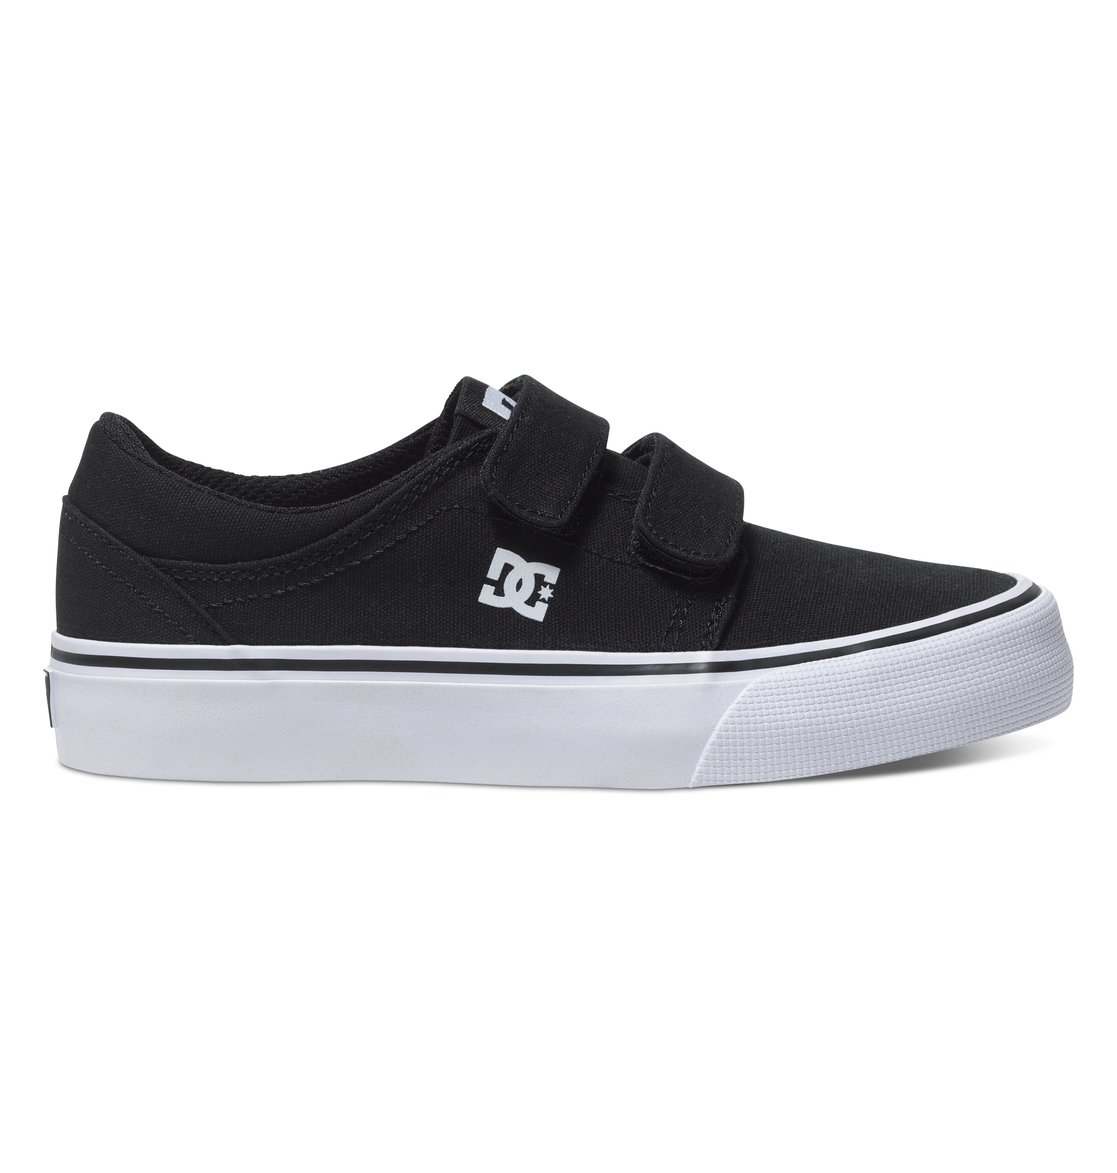 Chaussure Enfant DC Trase V - Ieued